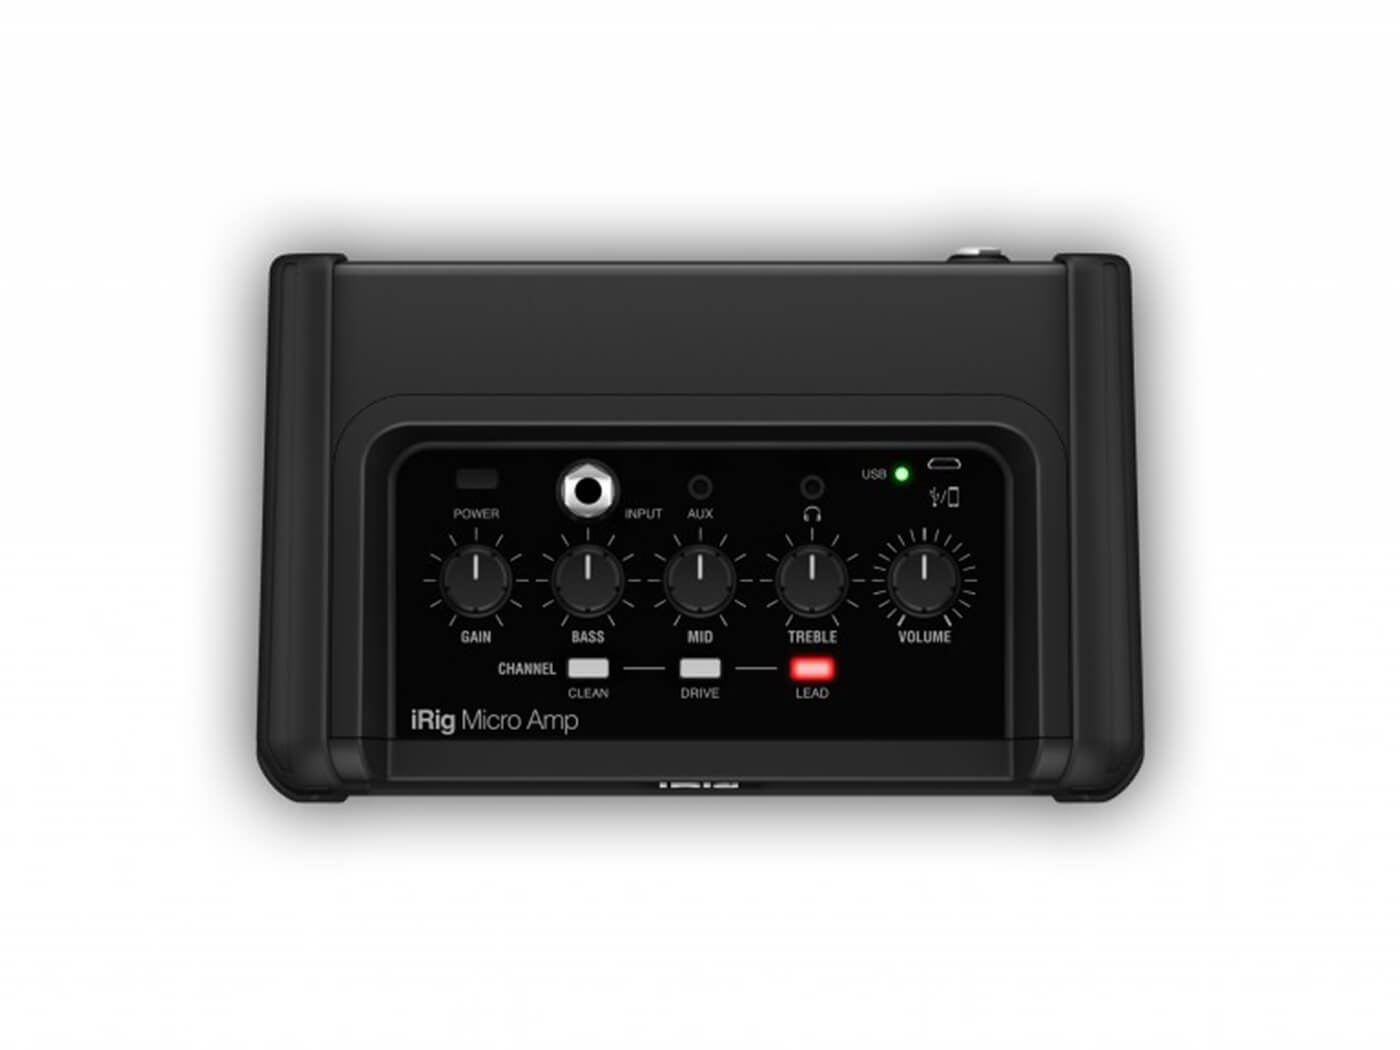 IK Multimedia's new battery-powered amp punches above its weight